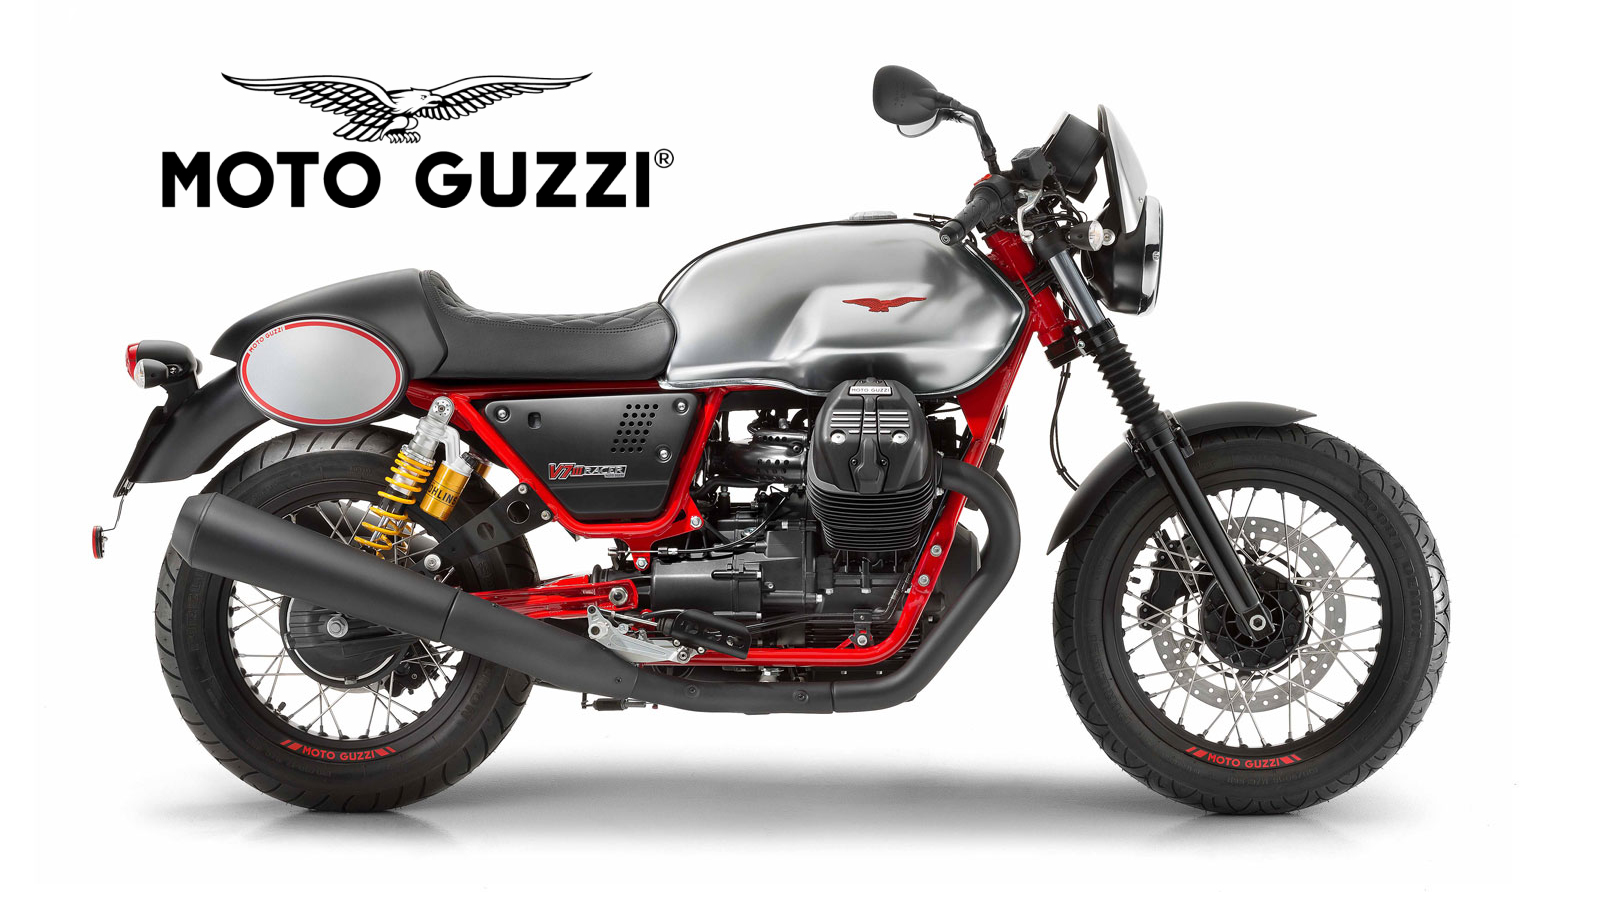 2017 2018 moto guzzi v7 iii racer review top speed. Black Bedroom Furniture Sets. Home Design Ideas